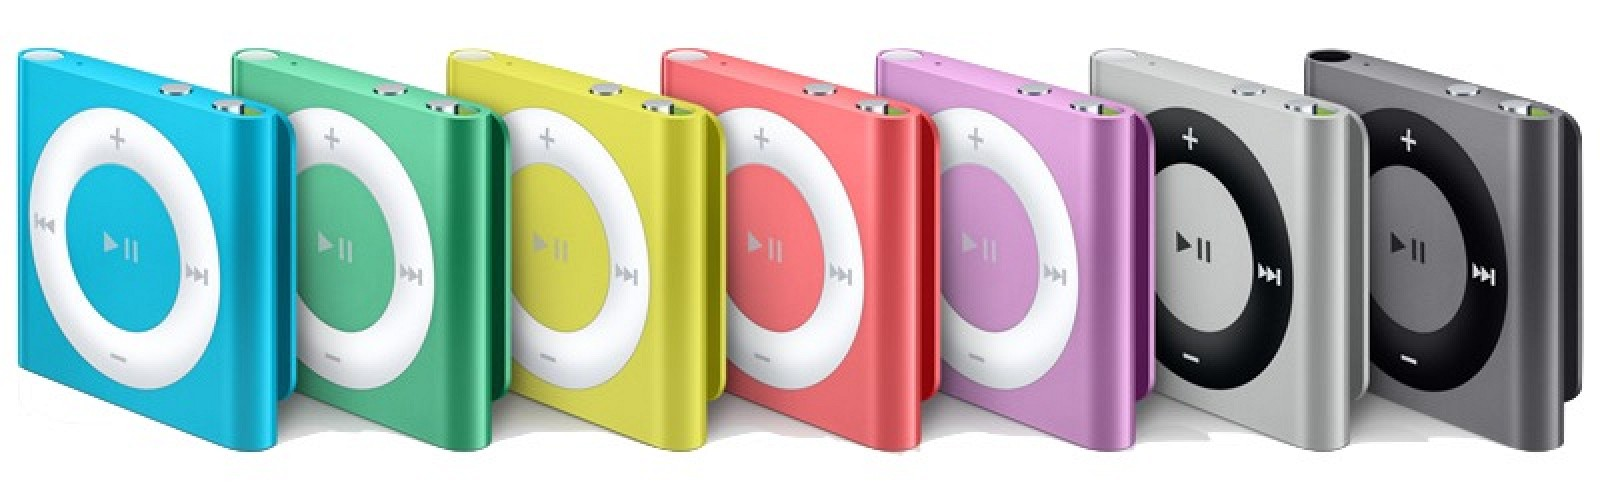 Recent iPod Shuffle Shortages Due to Supplier Changes, Not ...